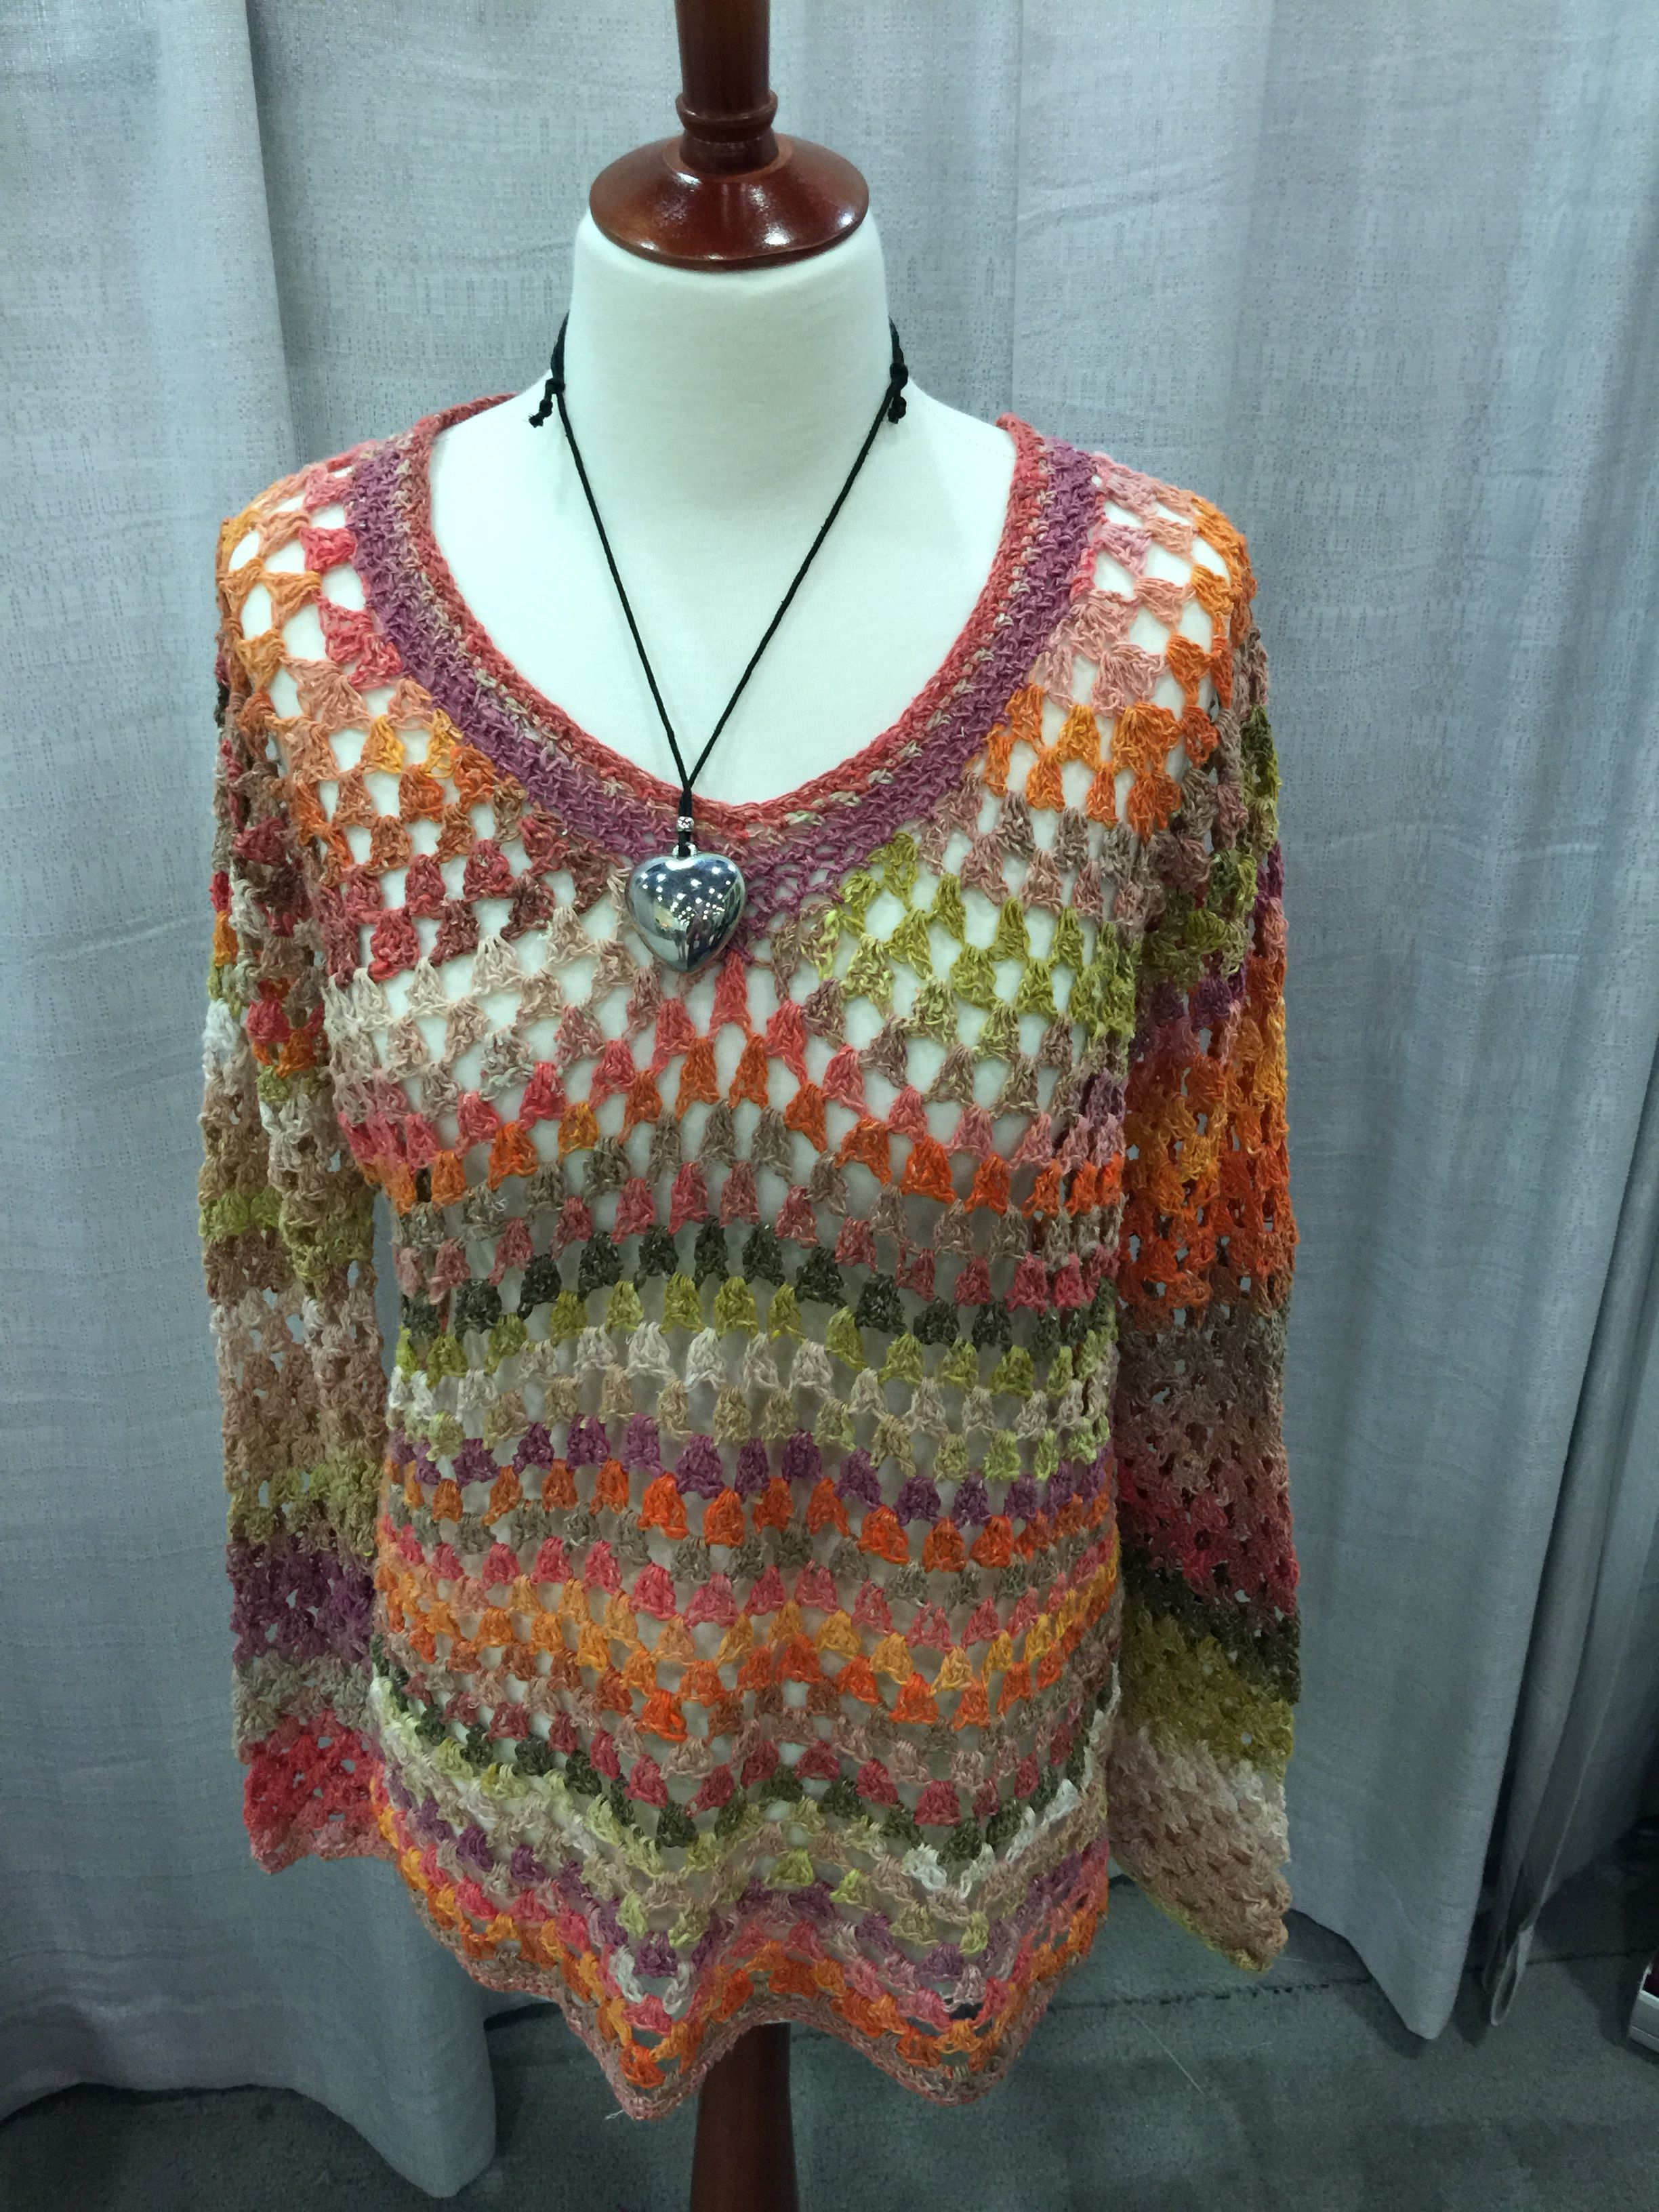 Noro Yarn Patterns Magnificent Design Ideas